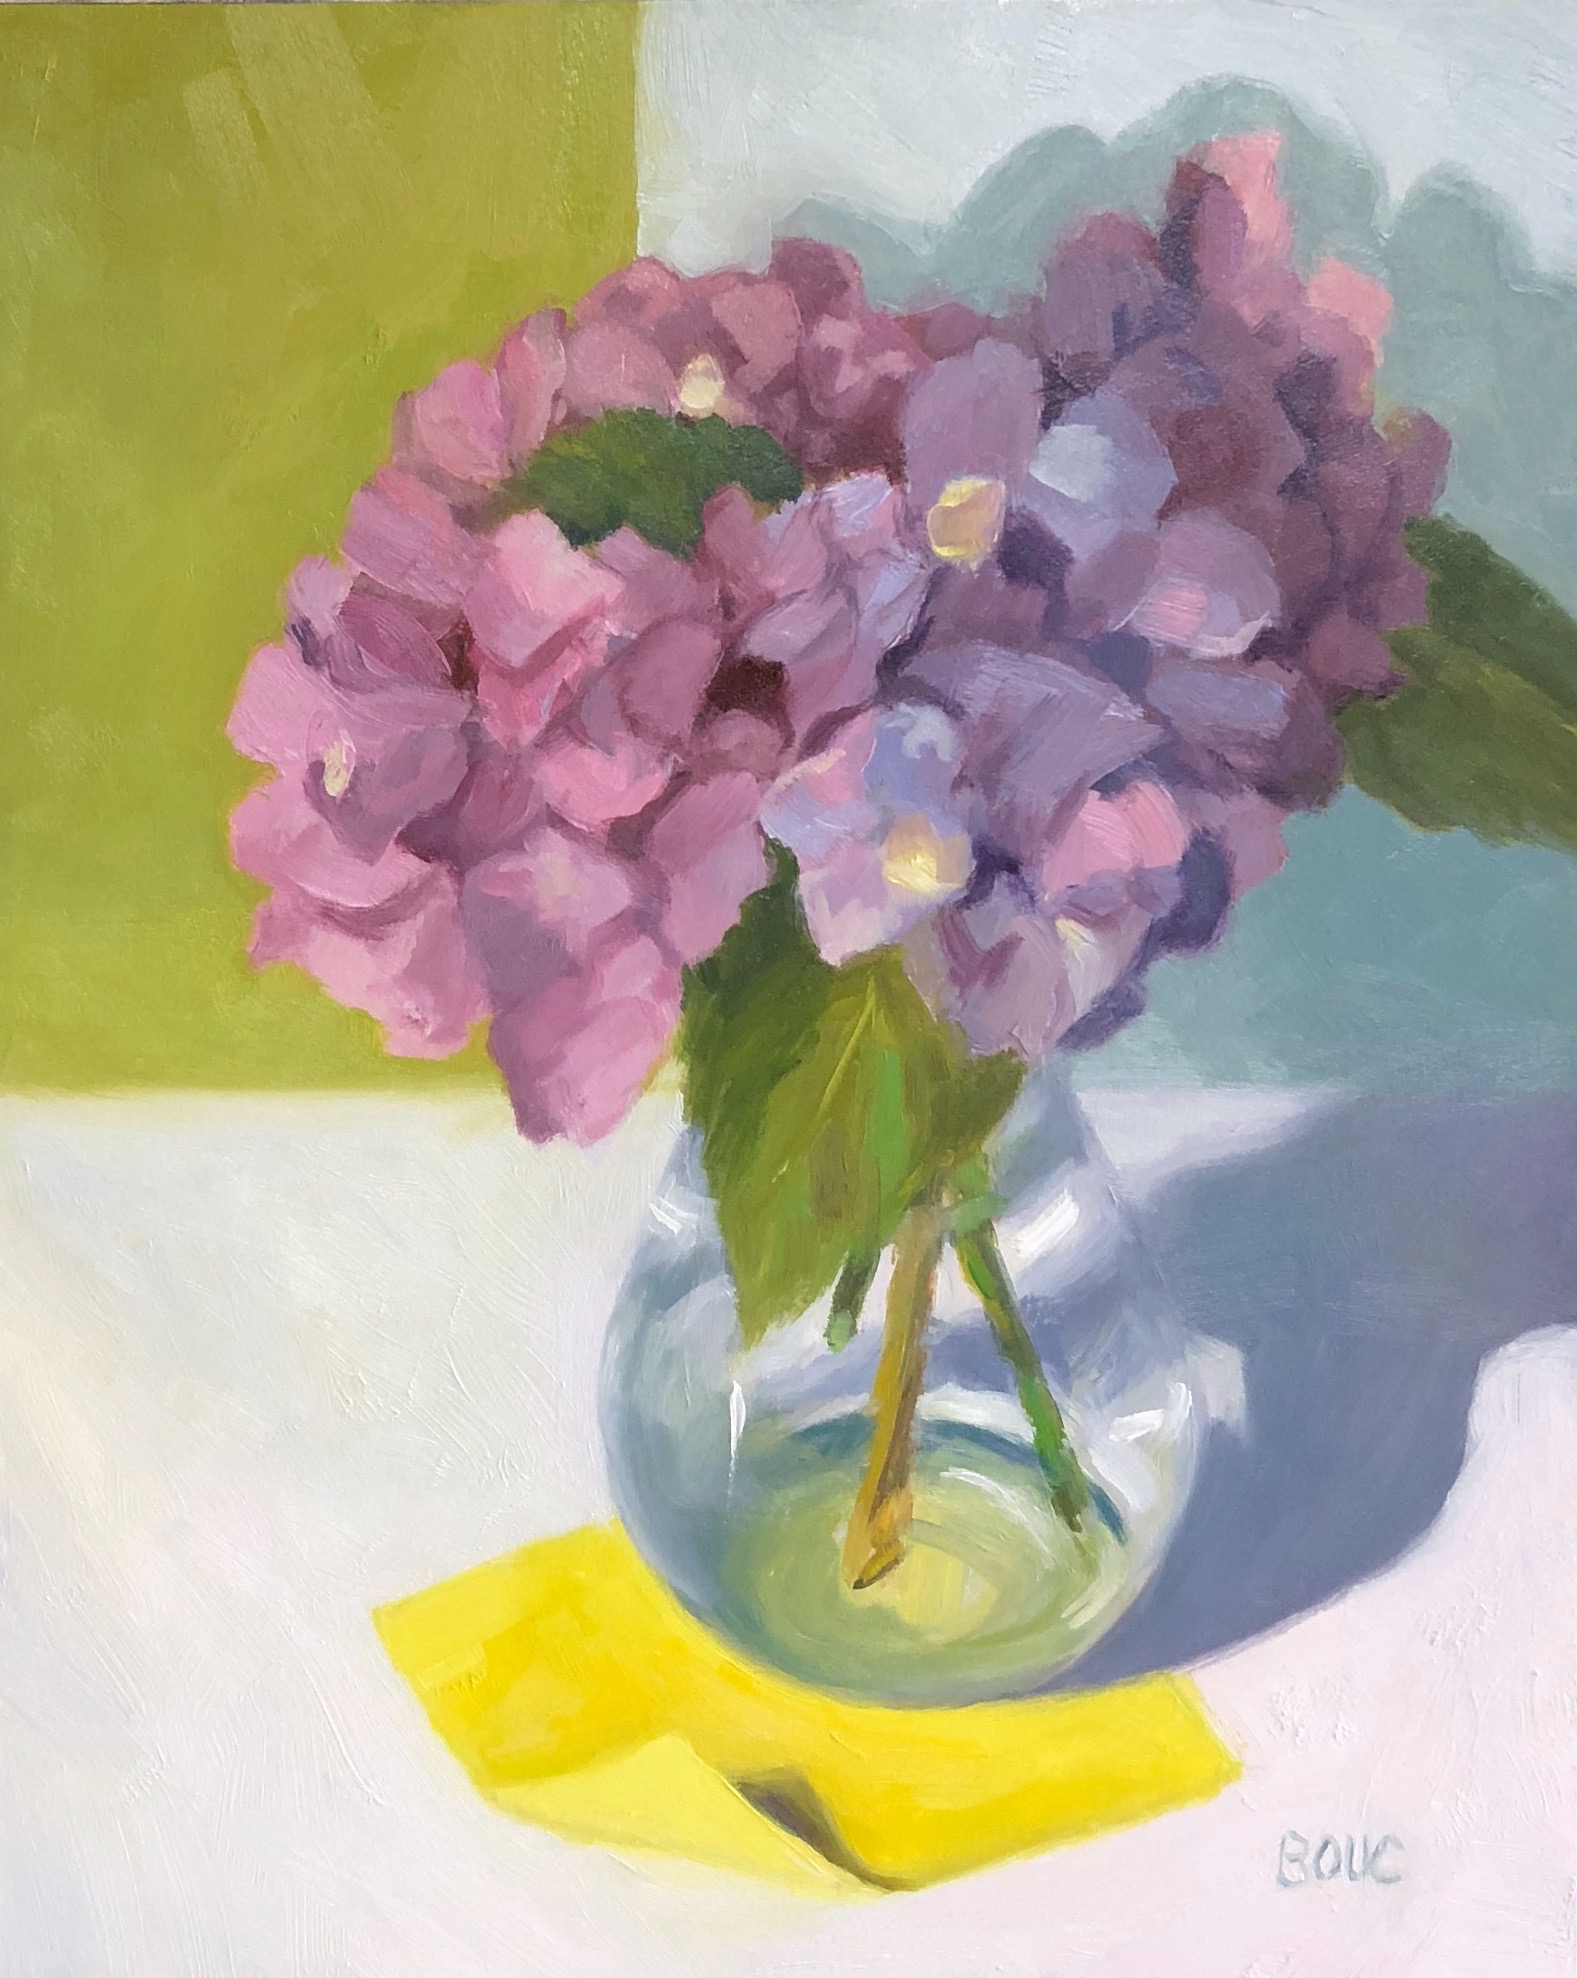 """Hydrangeas with Post-it Note, oil on Gessobord panel, 10x8"""" Available"""